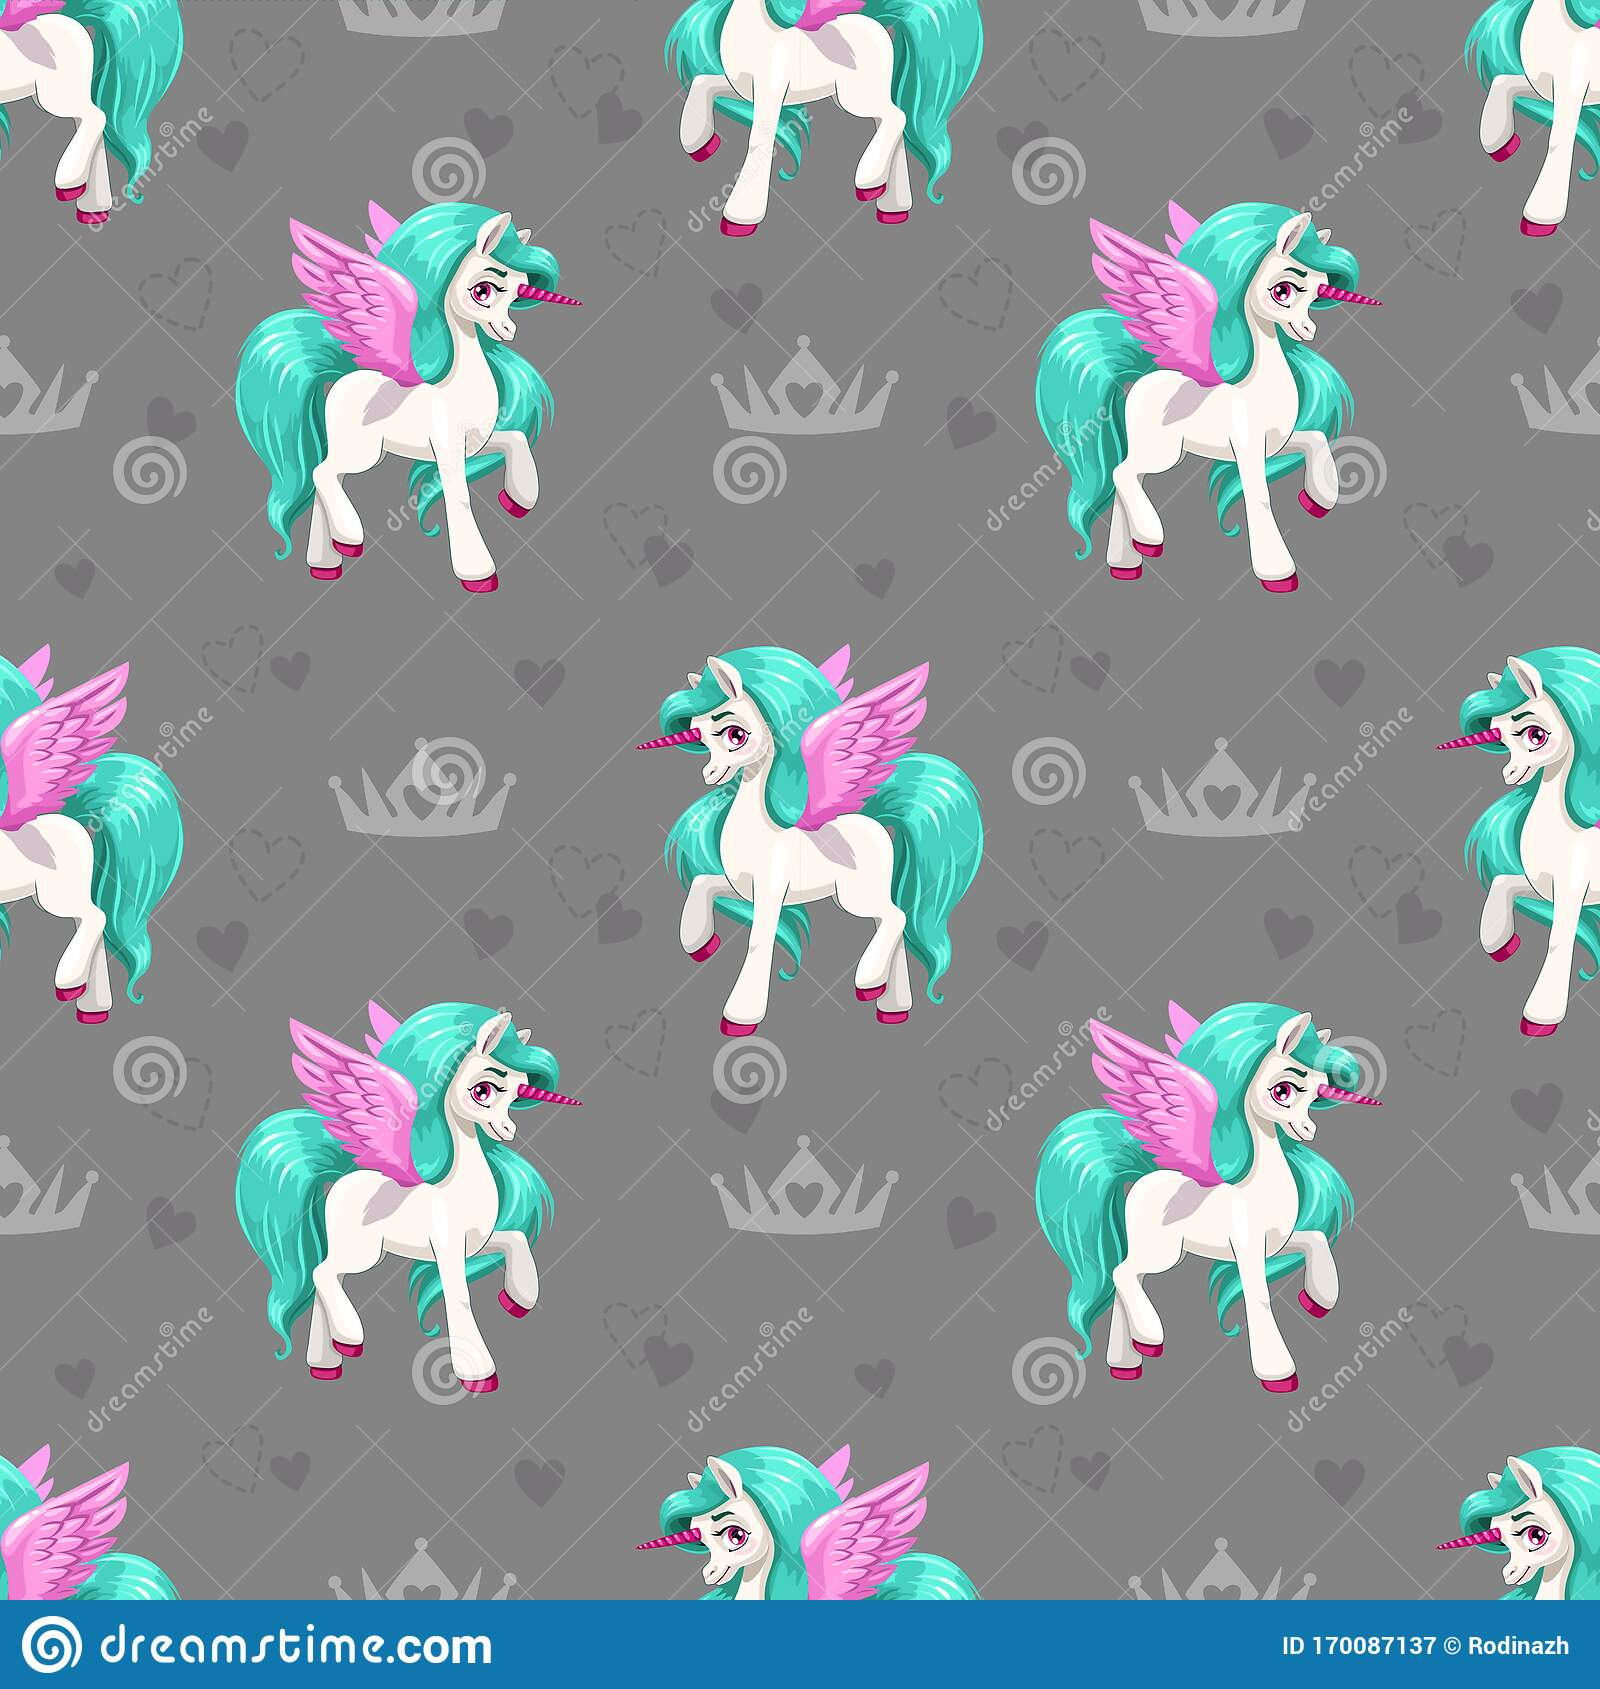 Pretty Unicorn Seamless Pattern For Girls With Cute Cartoon Little Horses Stock Vector Illustration Of Cute Character 170087137